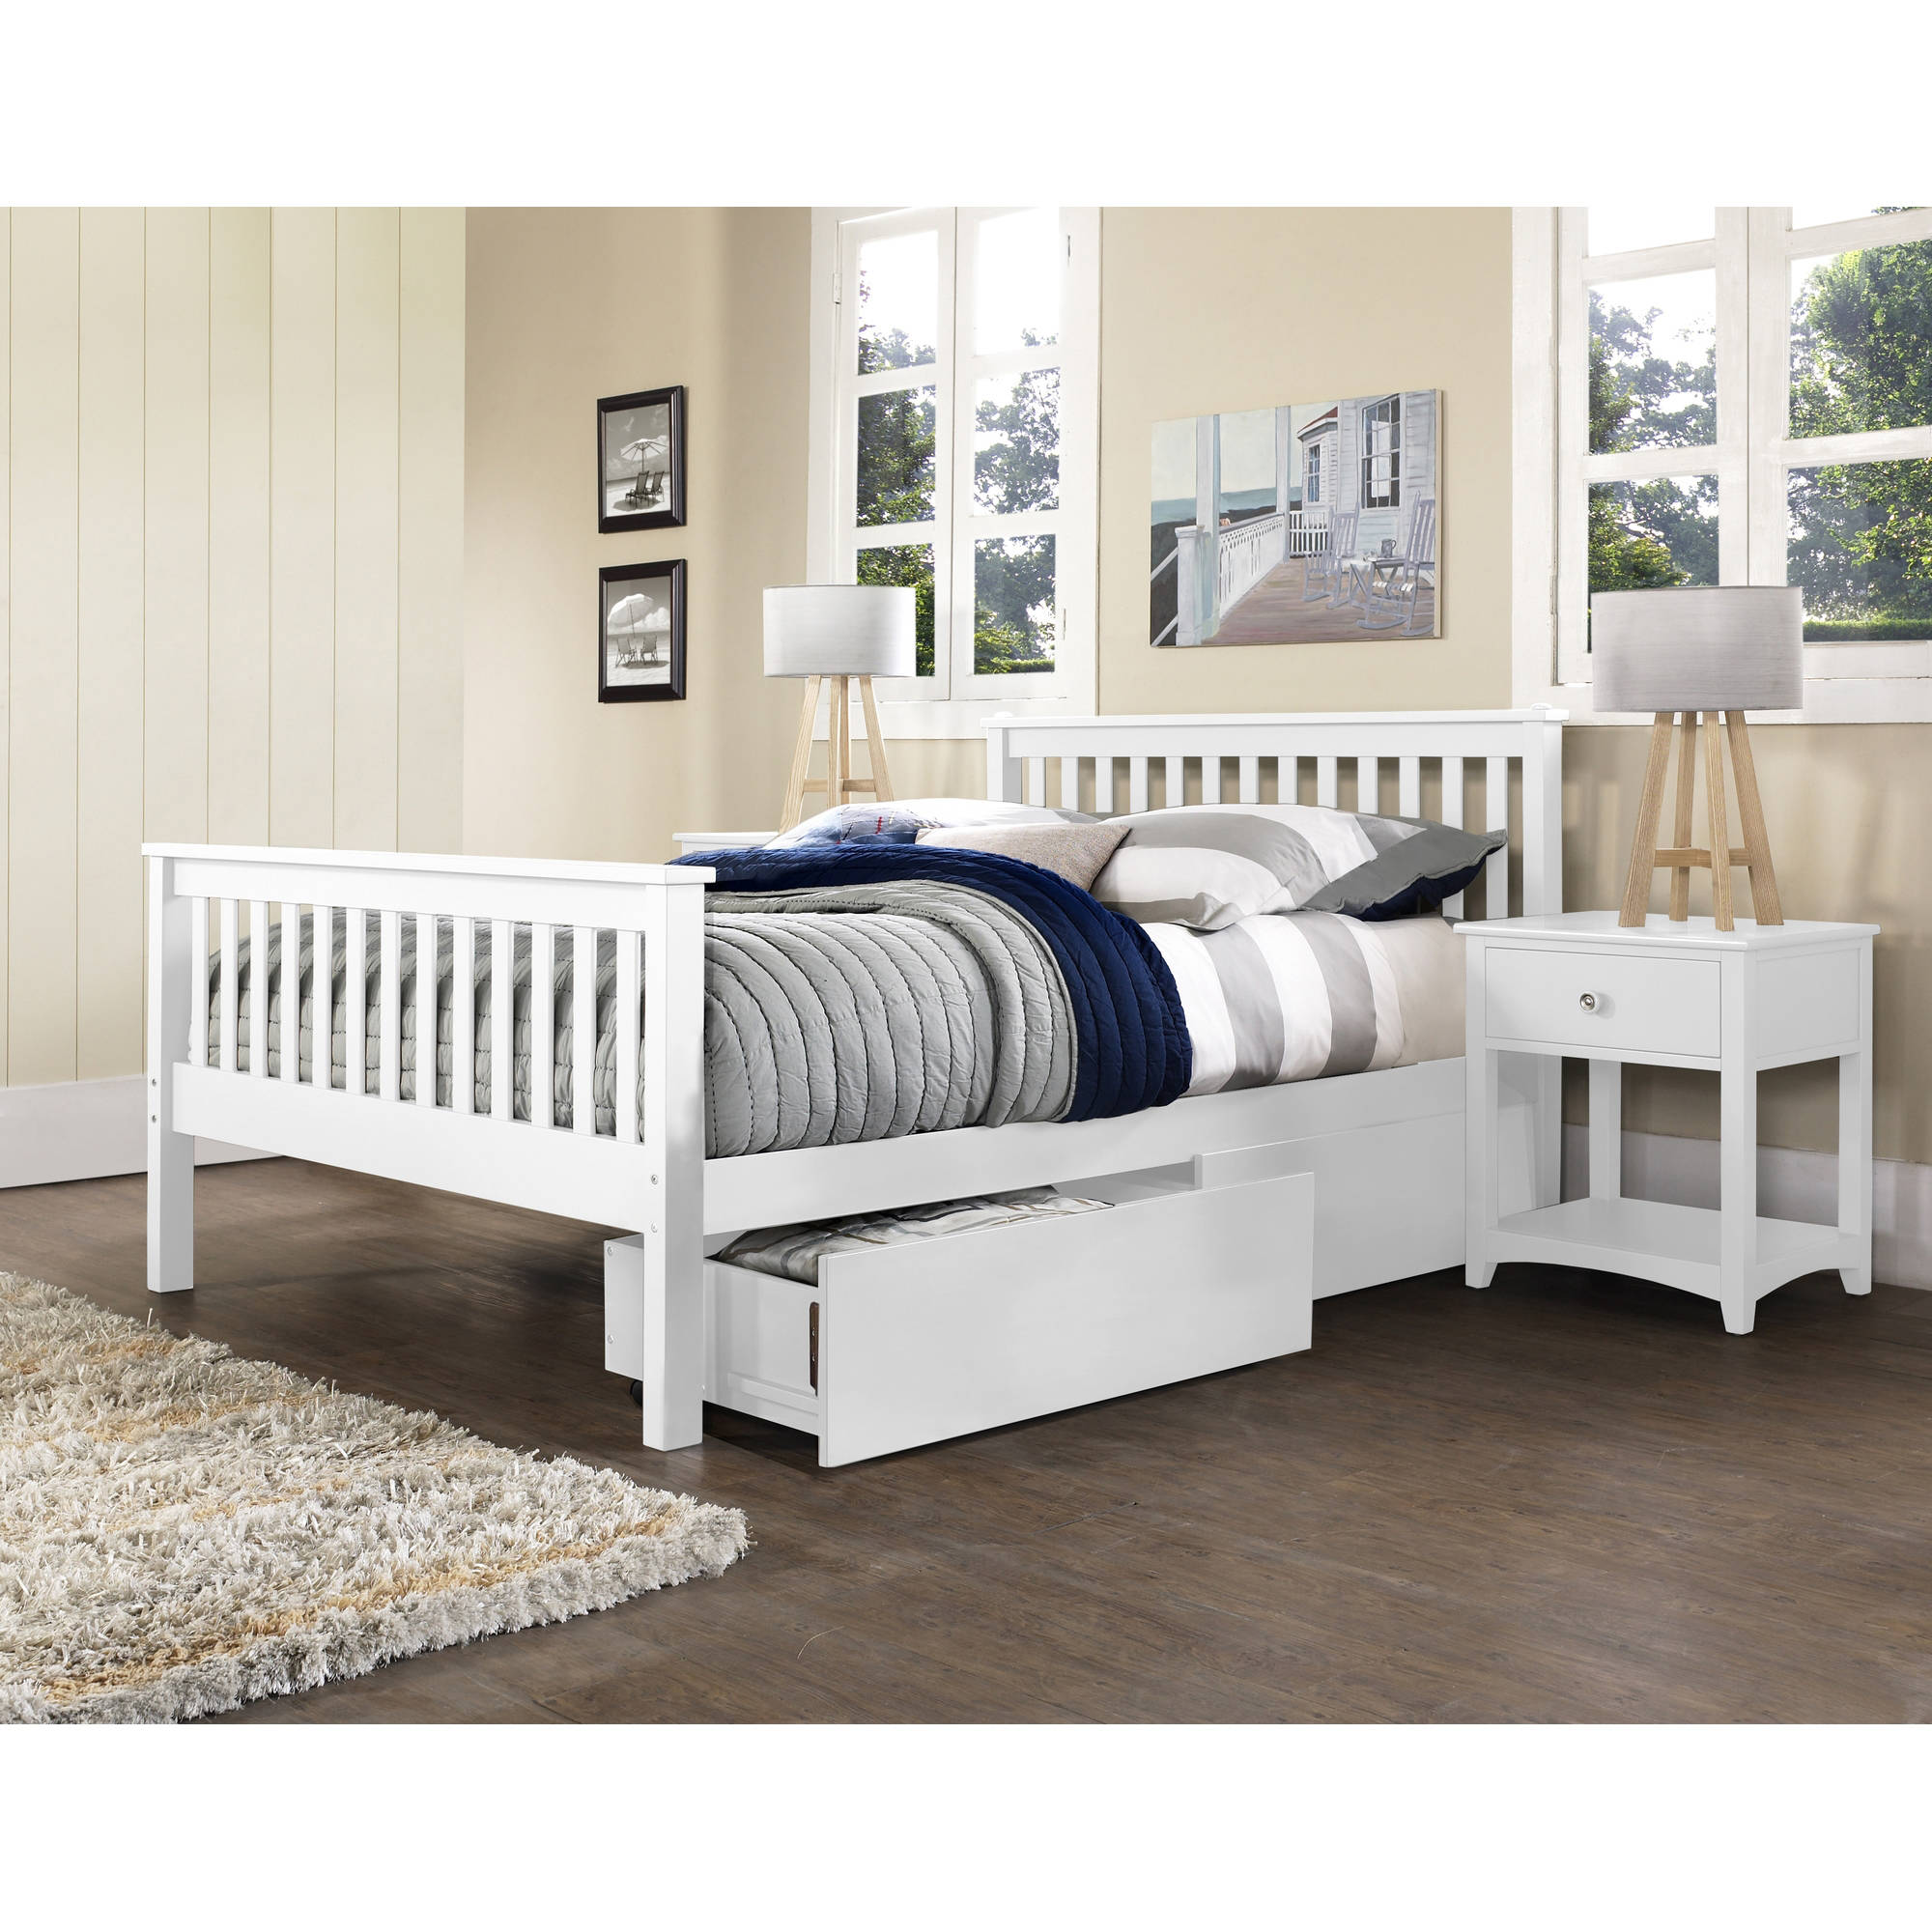 Hillsdale Furniture Barrett Bed with Storage Drawers, Multiple Sizes and Colors